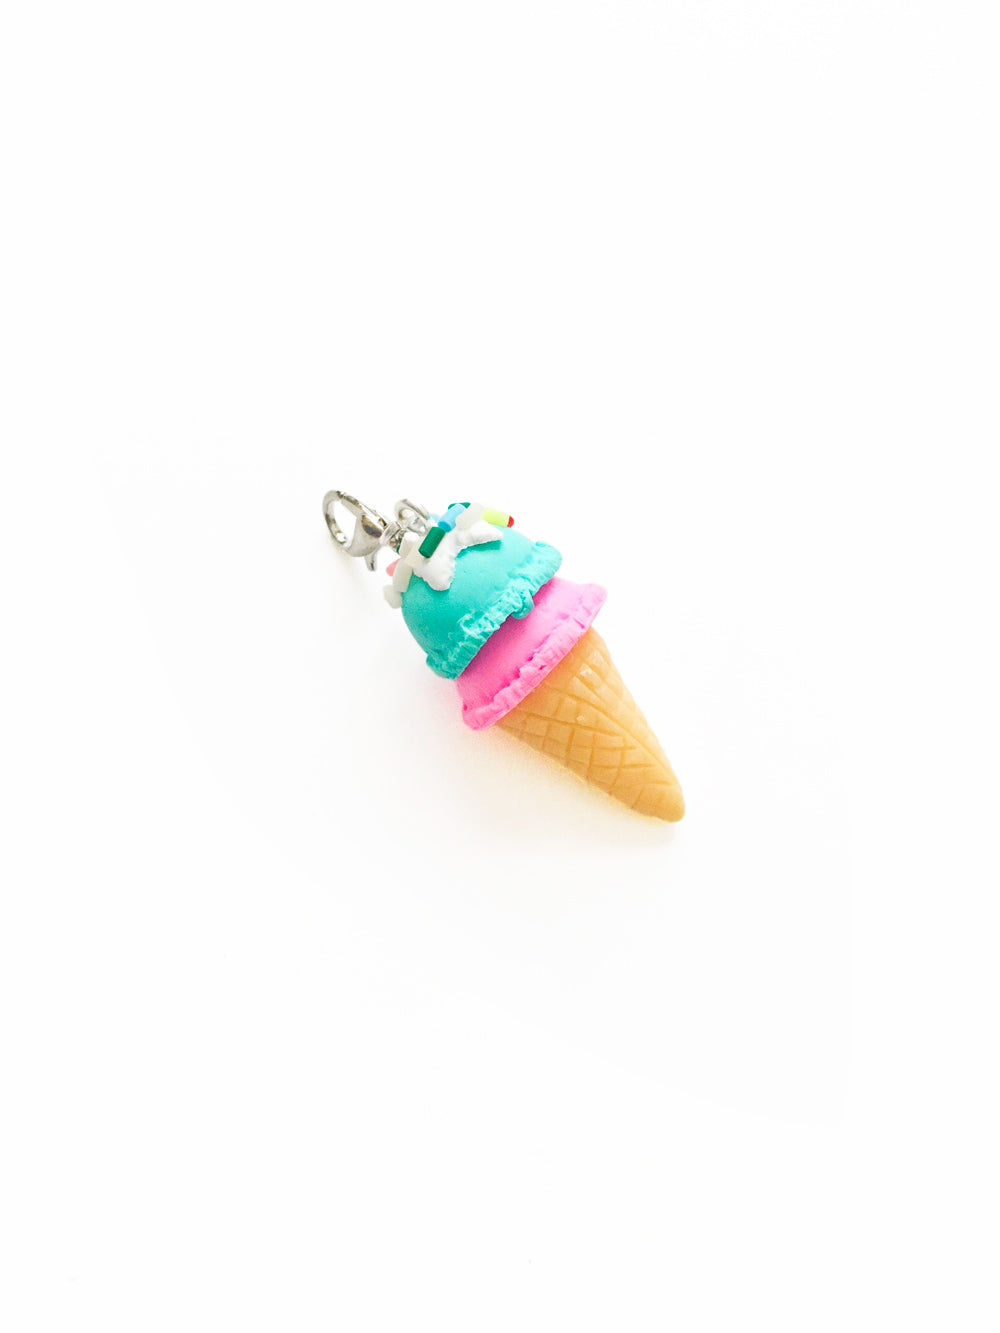 Kawaii Ice Cream Zipper Pull Charm